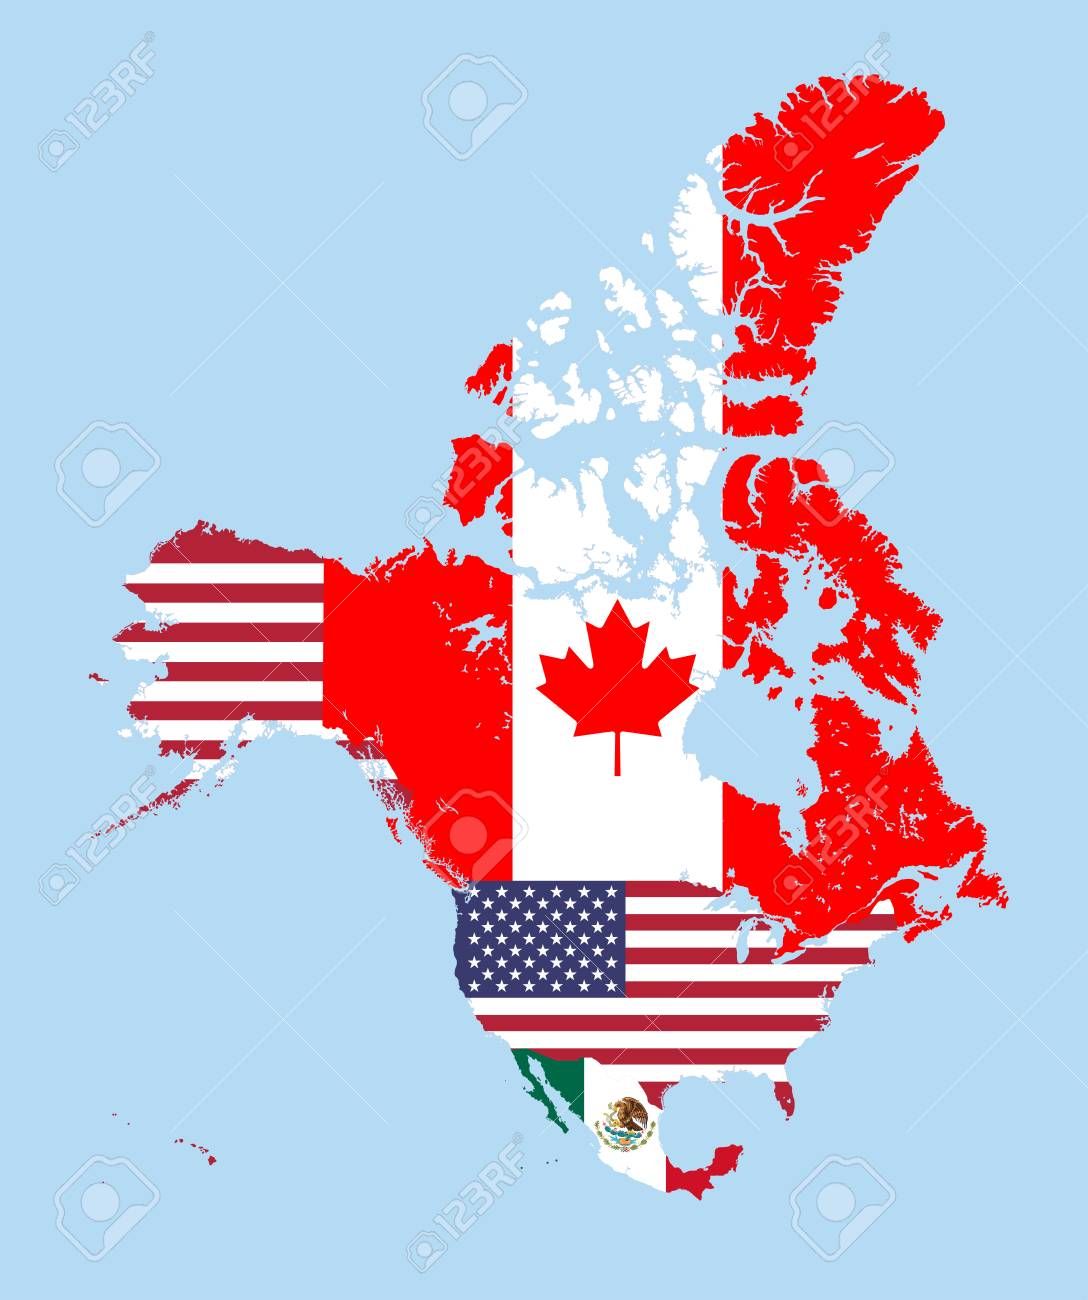 canada united states and mexico map combined with flags stock vector 84212821